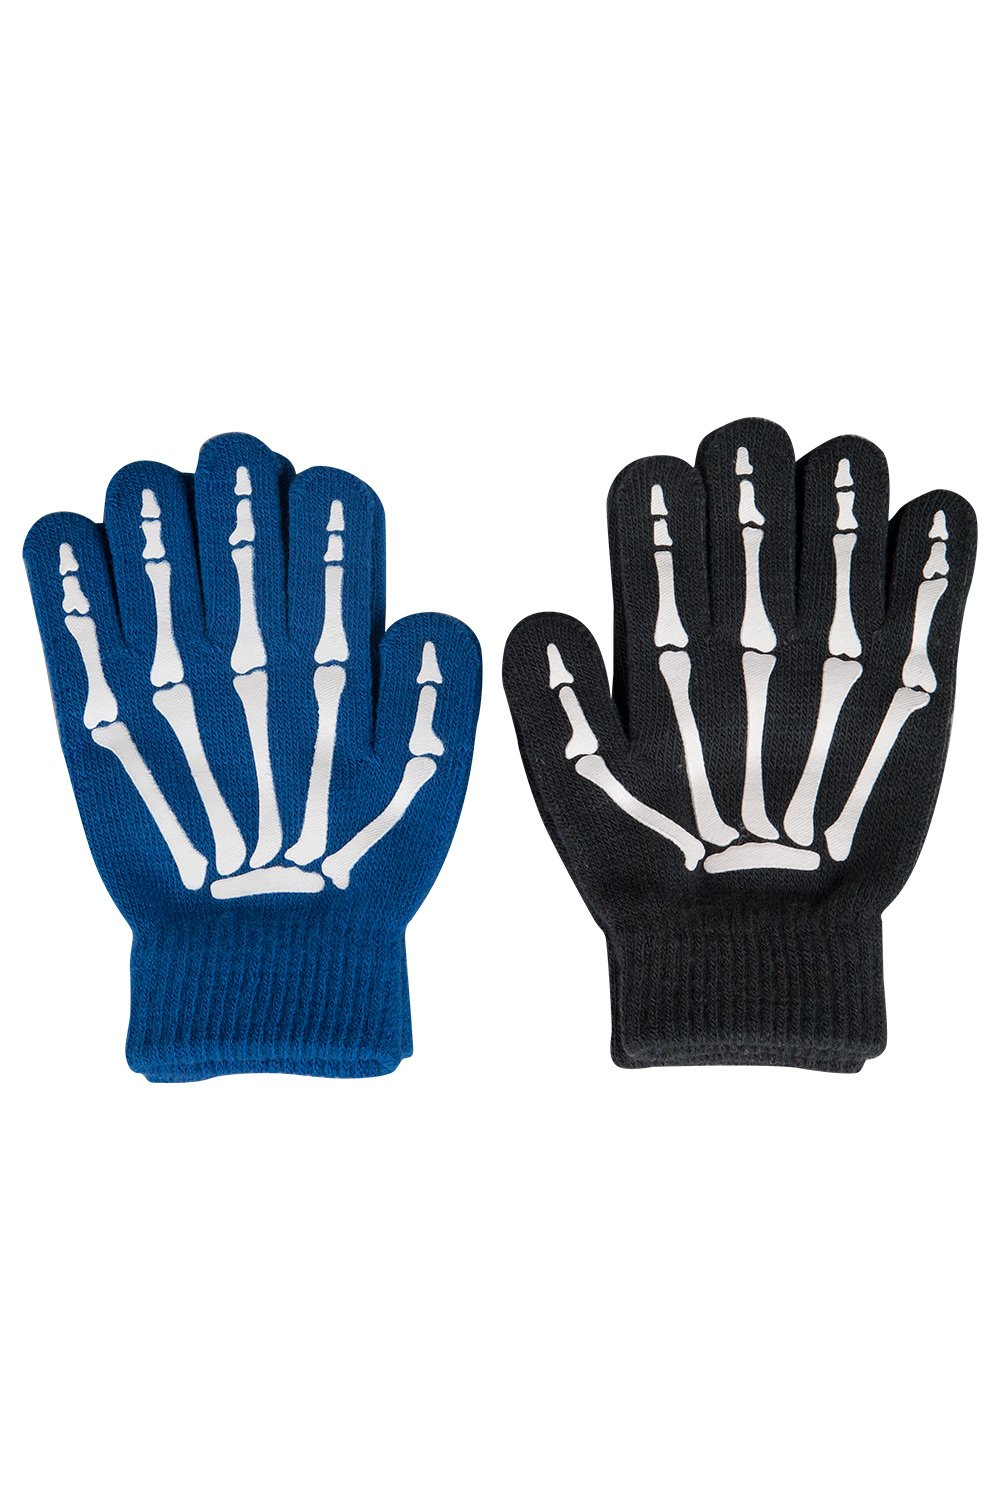 Mountain Warehouse Magic Grippi Kids Gloves - 2 Packs - Stretch Knit with Textured Palm - One Size Fits All - Ideal for Kids When Outdoors in Winter 022067014001